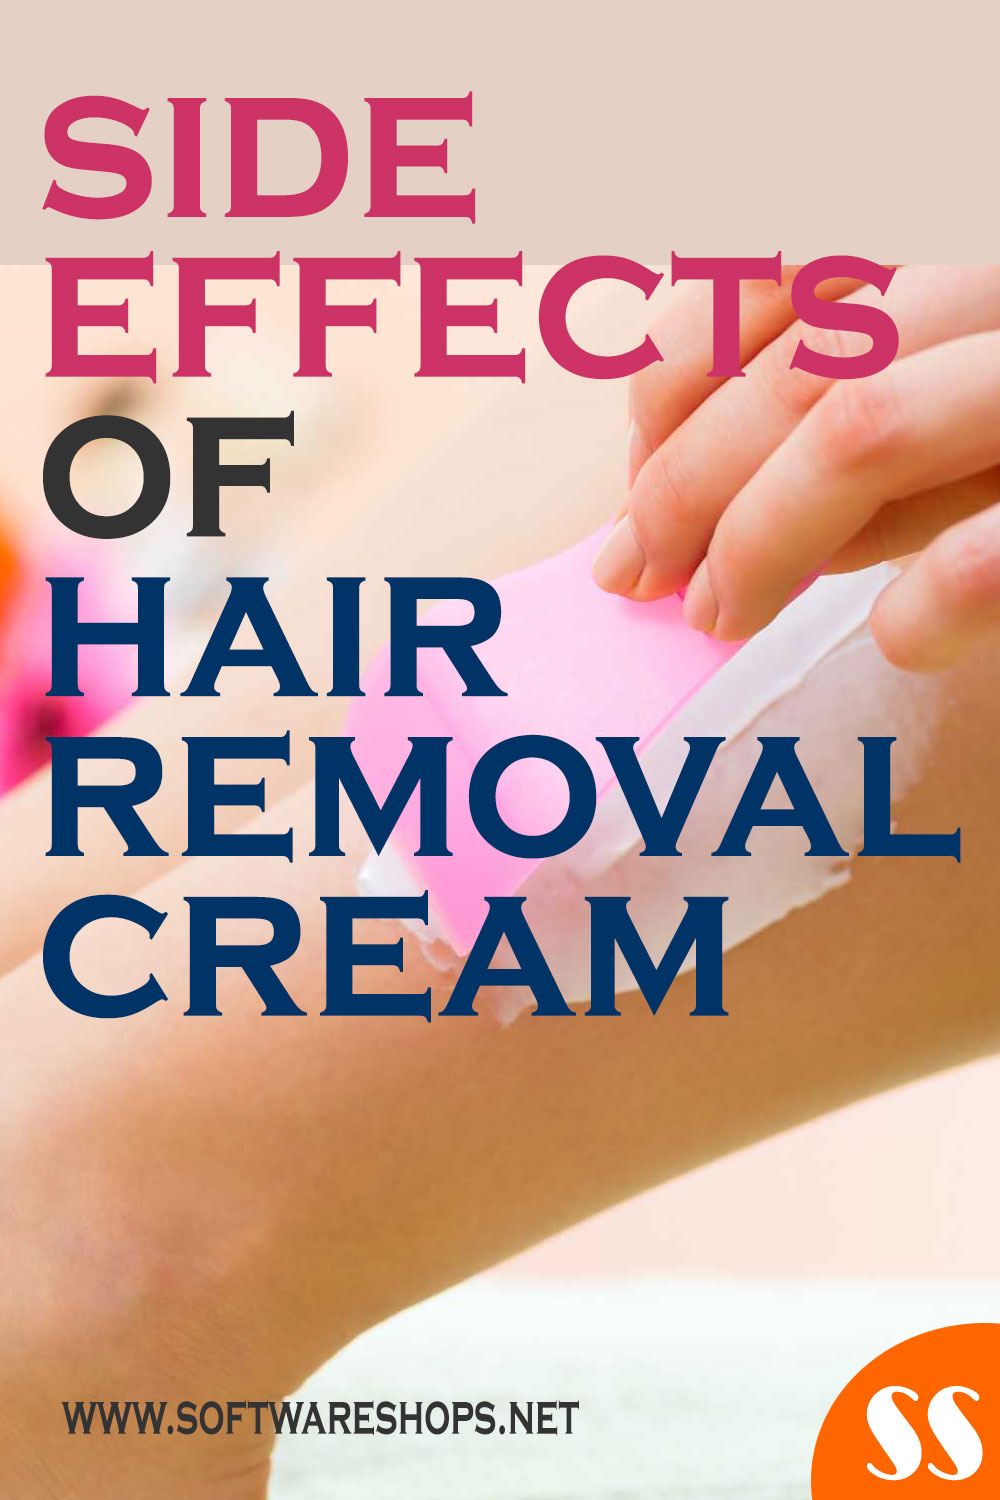 side effects of hair removal cream